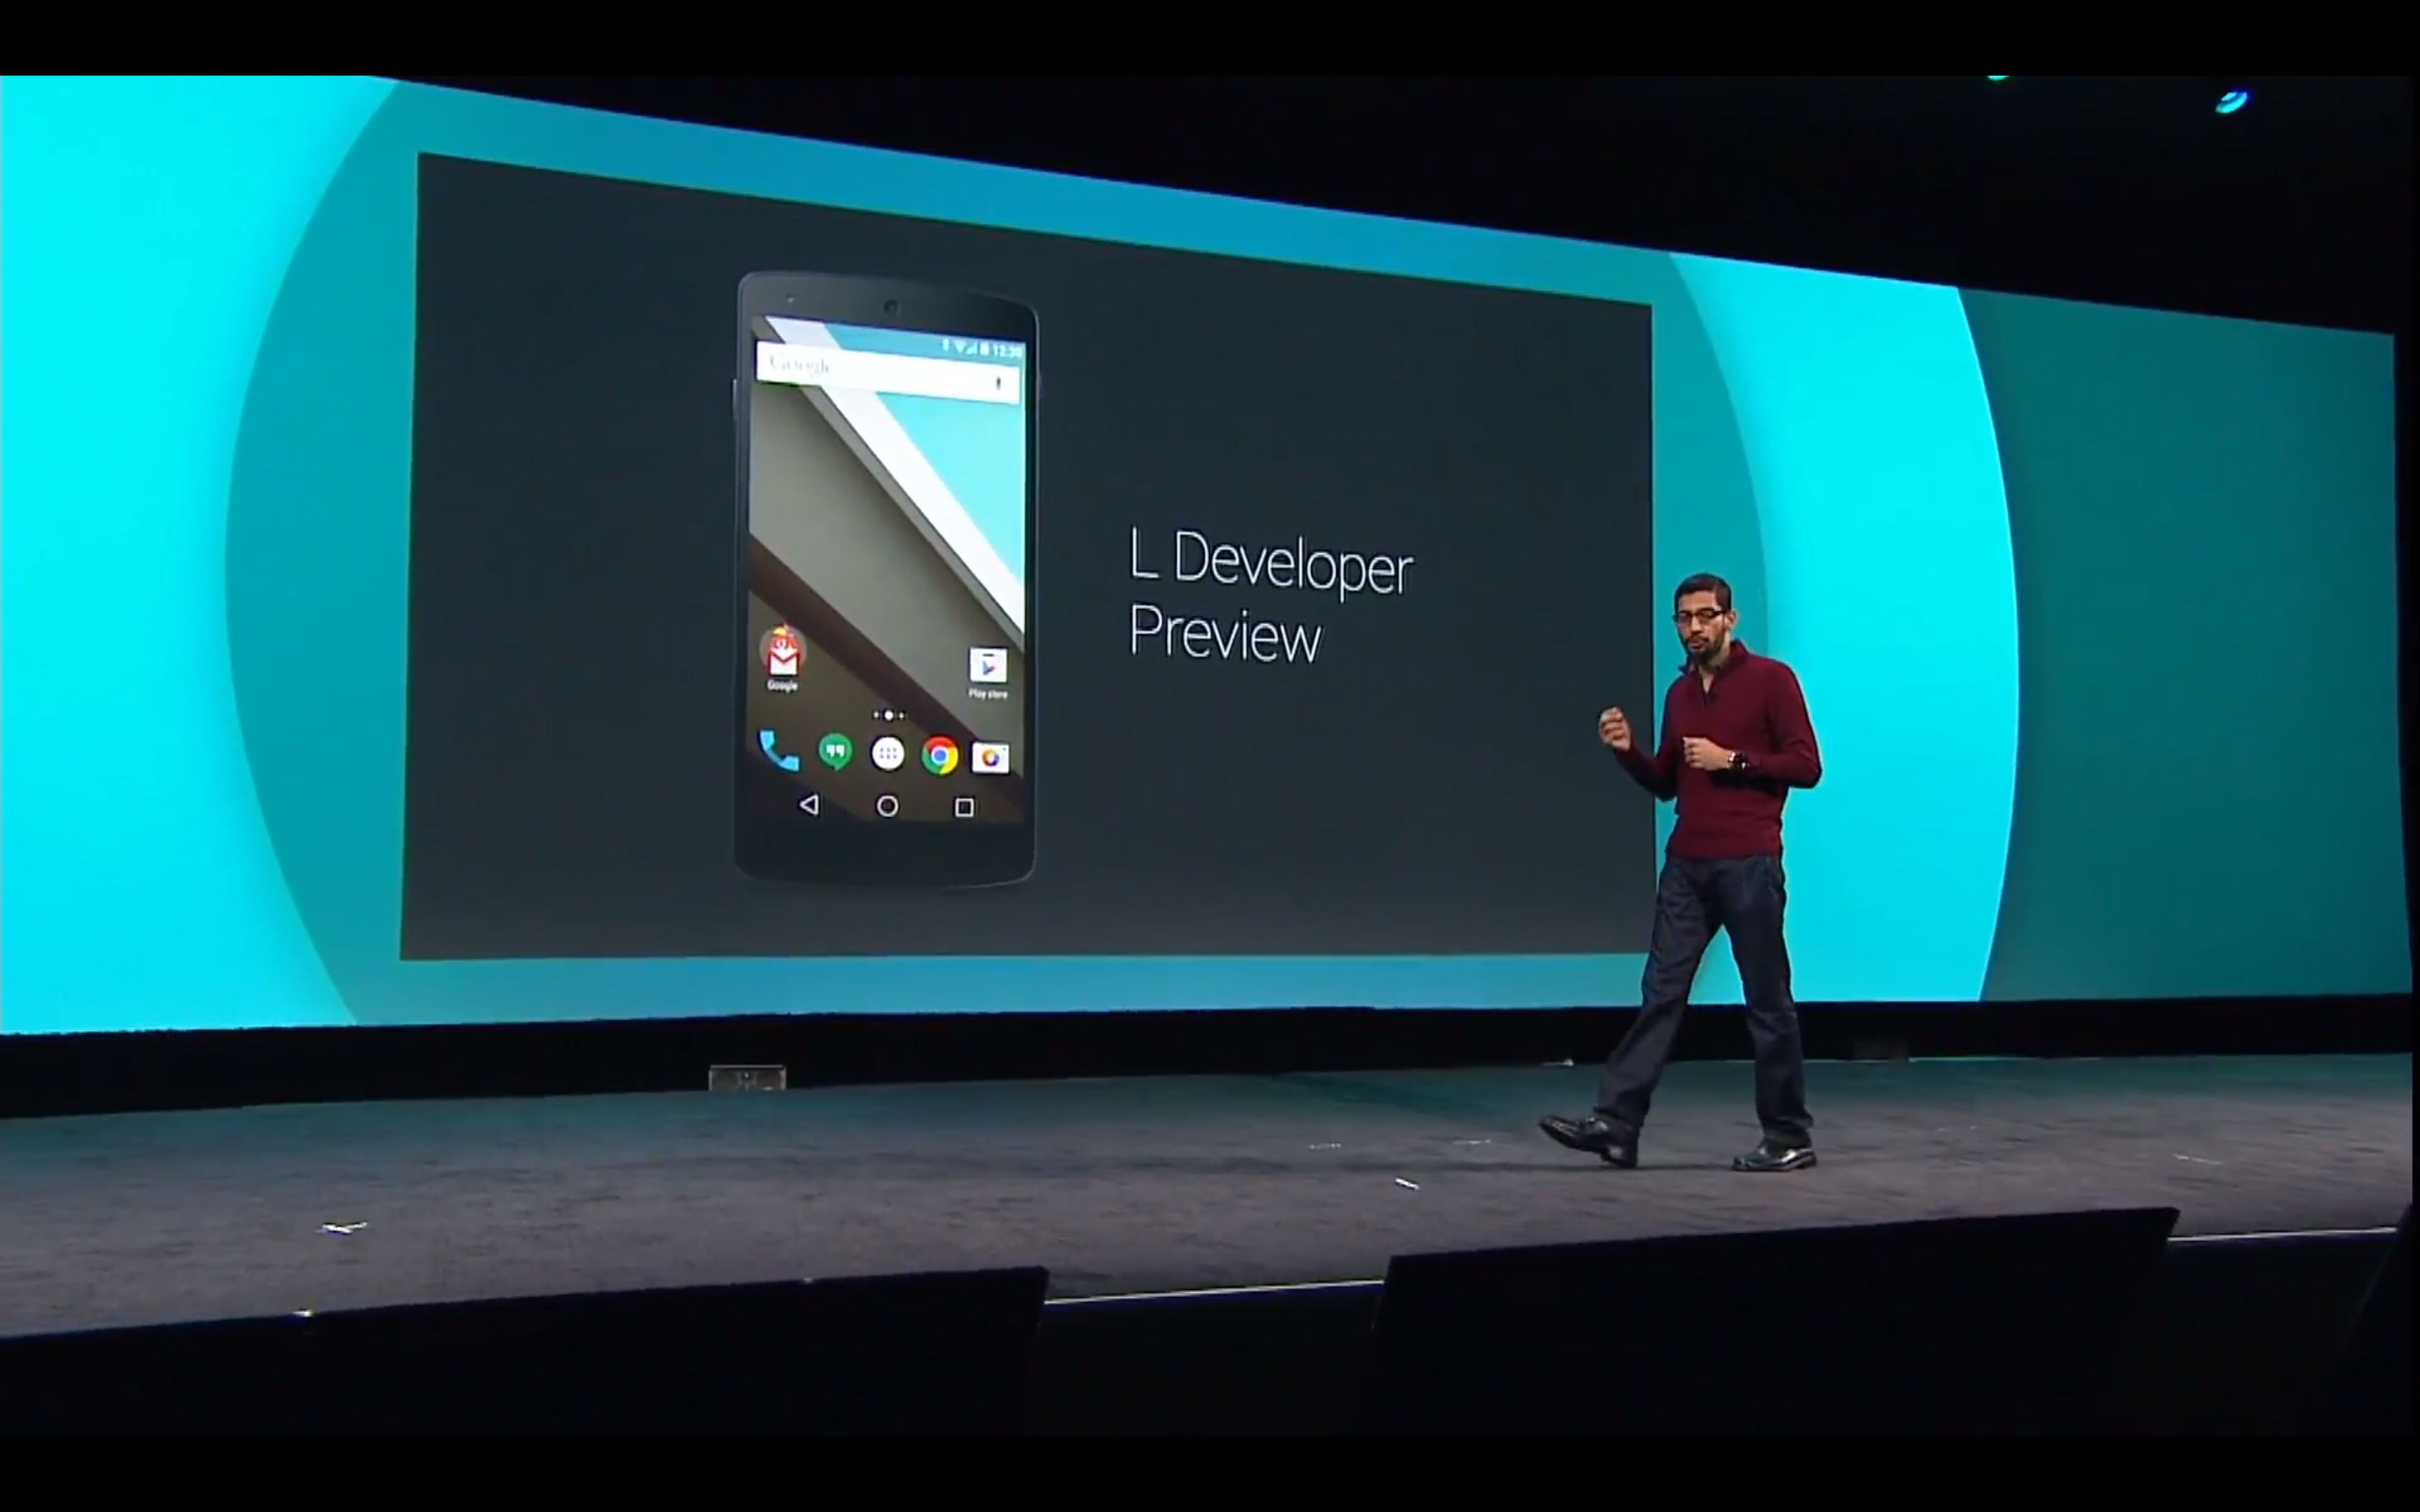 How To Root Android L Developer Preview On Nexus 5 and Nexus